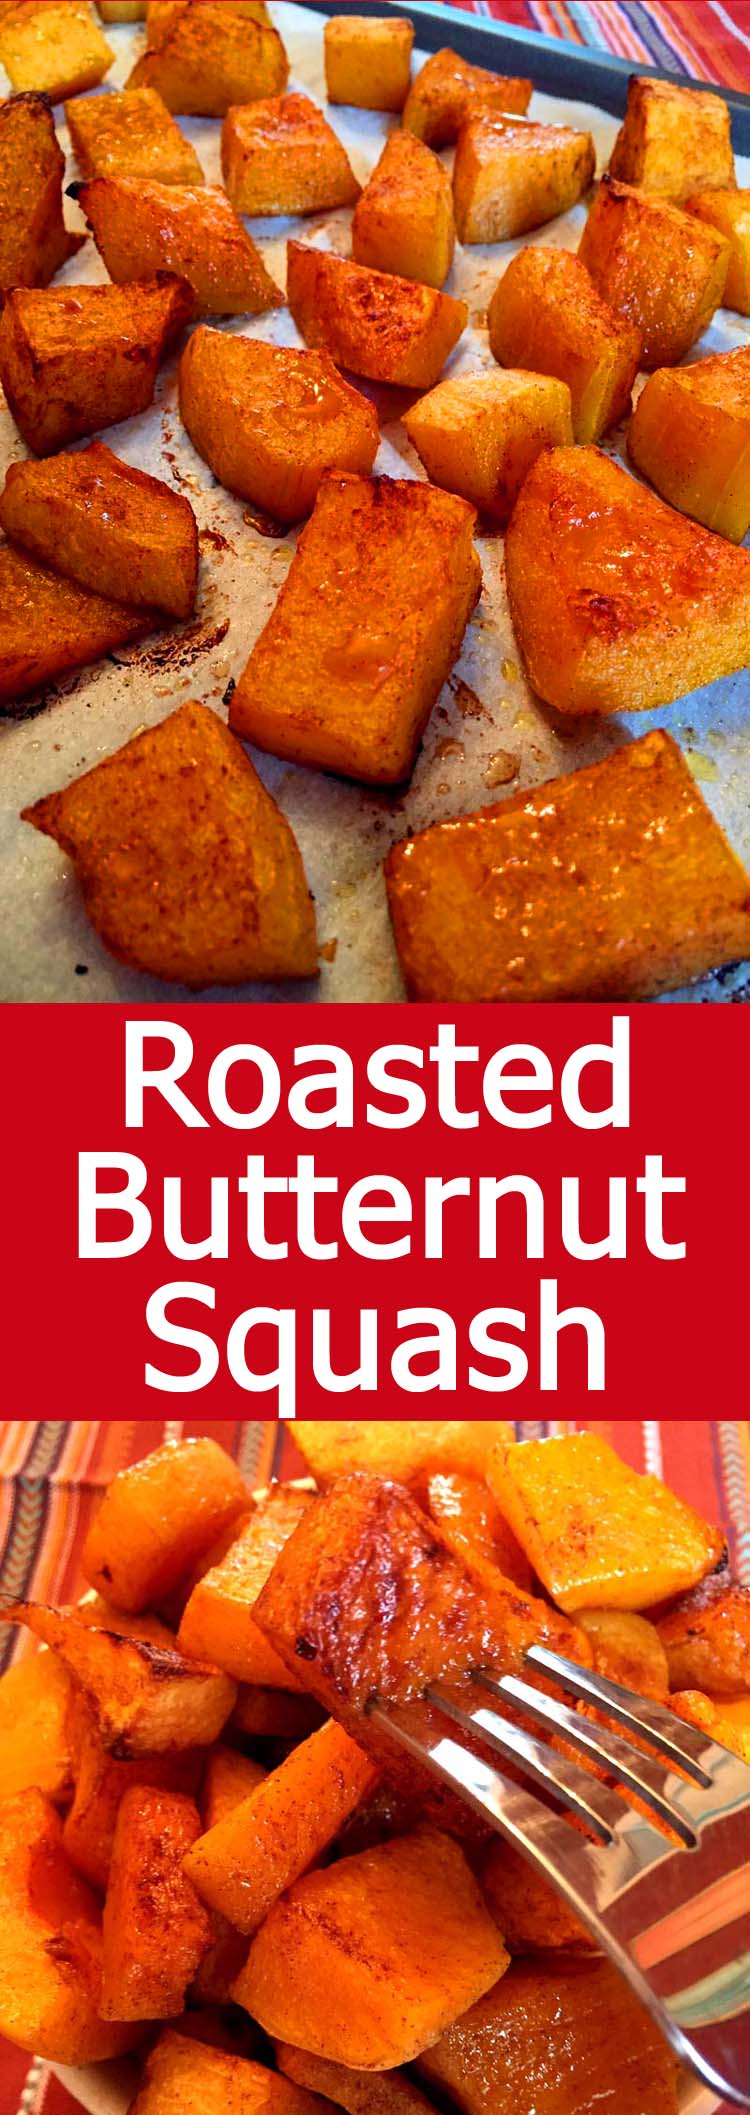 This roasted butternut squash is amazing! So good, it's like a vegetable candy!